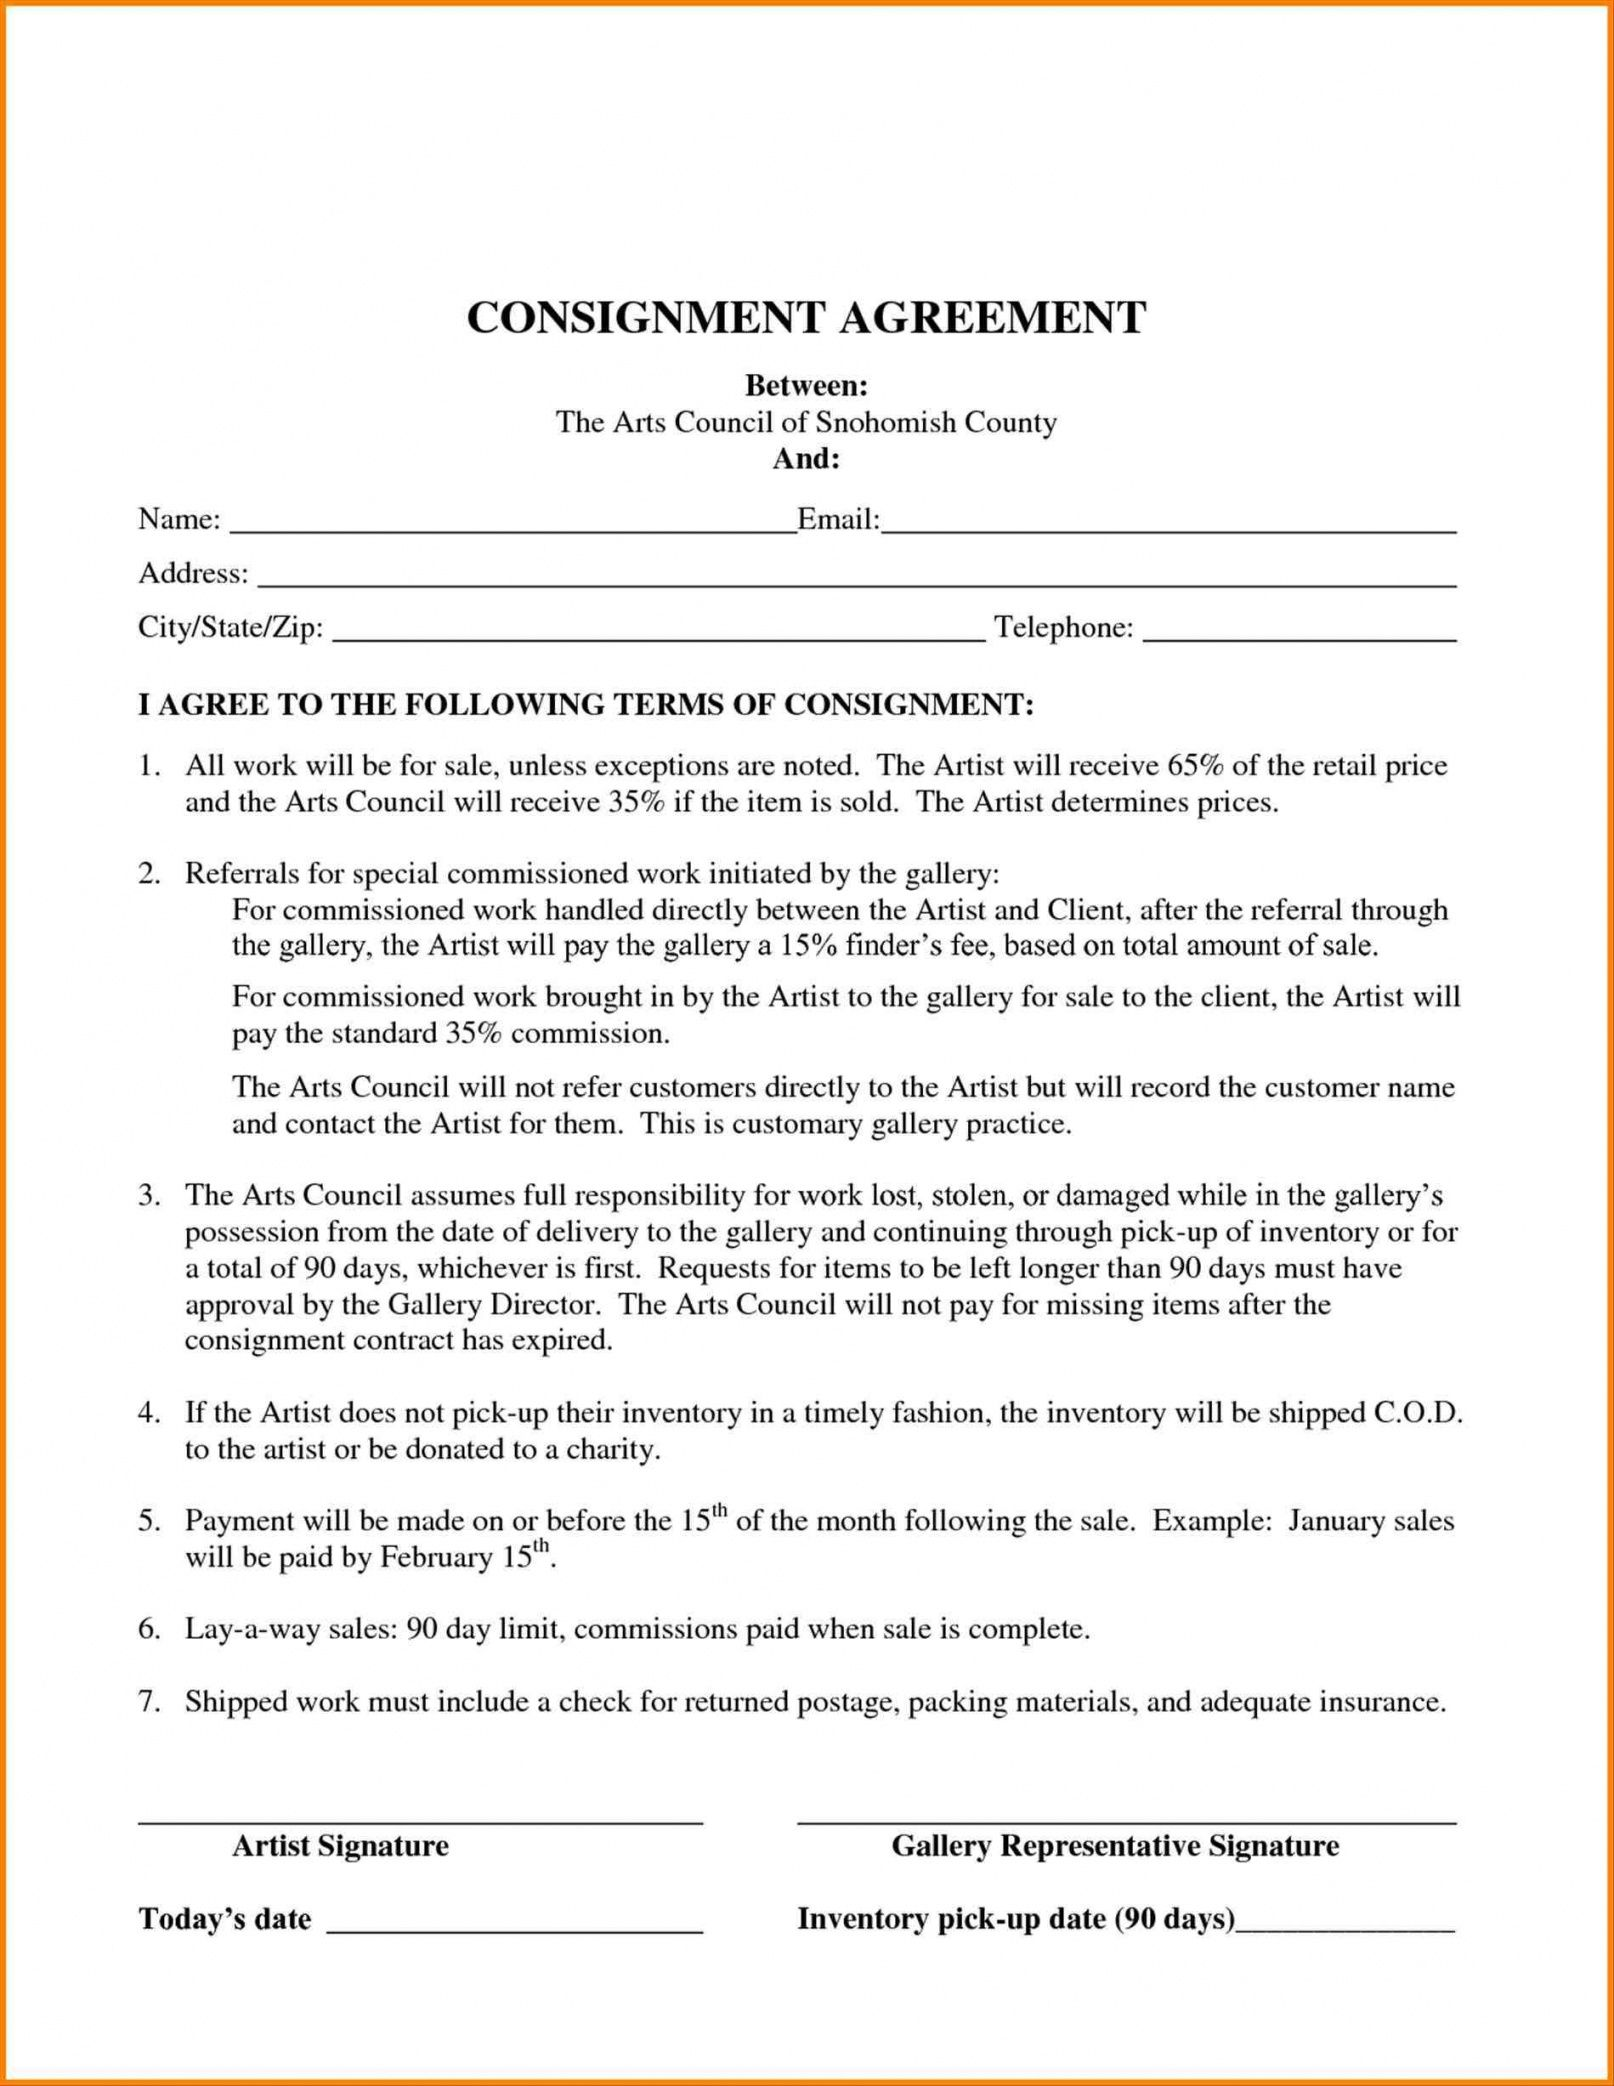 Get Our Image Of Auto Consignment Agreement Template Agreement